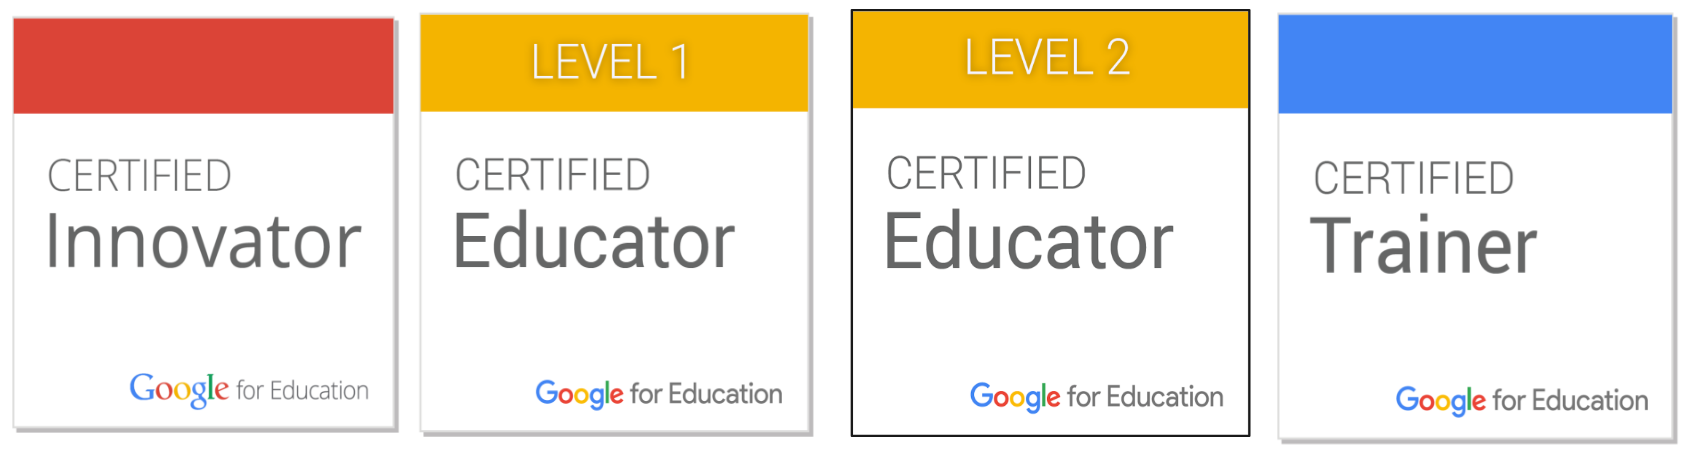 10 Google Certification Tips - How to ace your certification exam